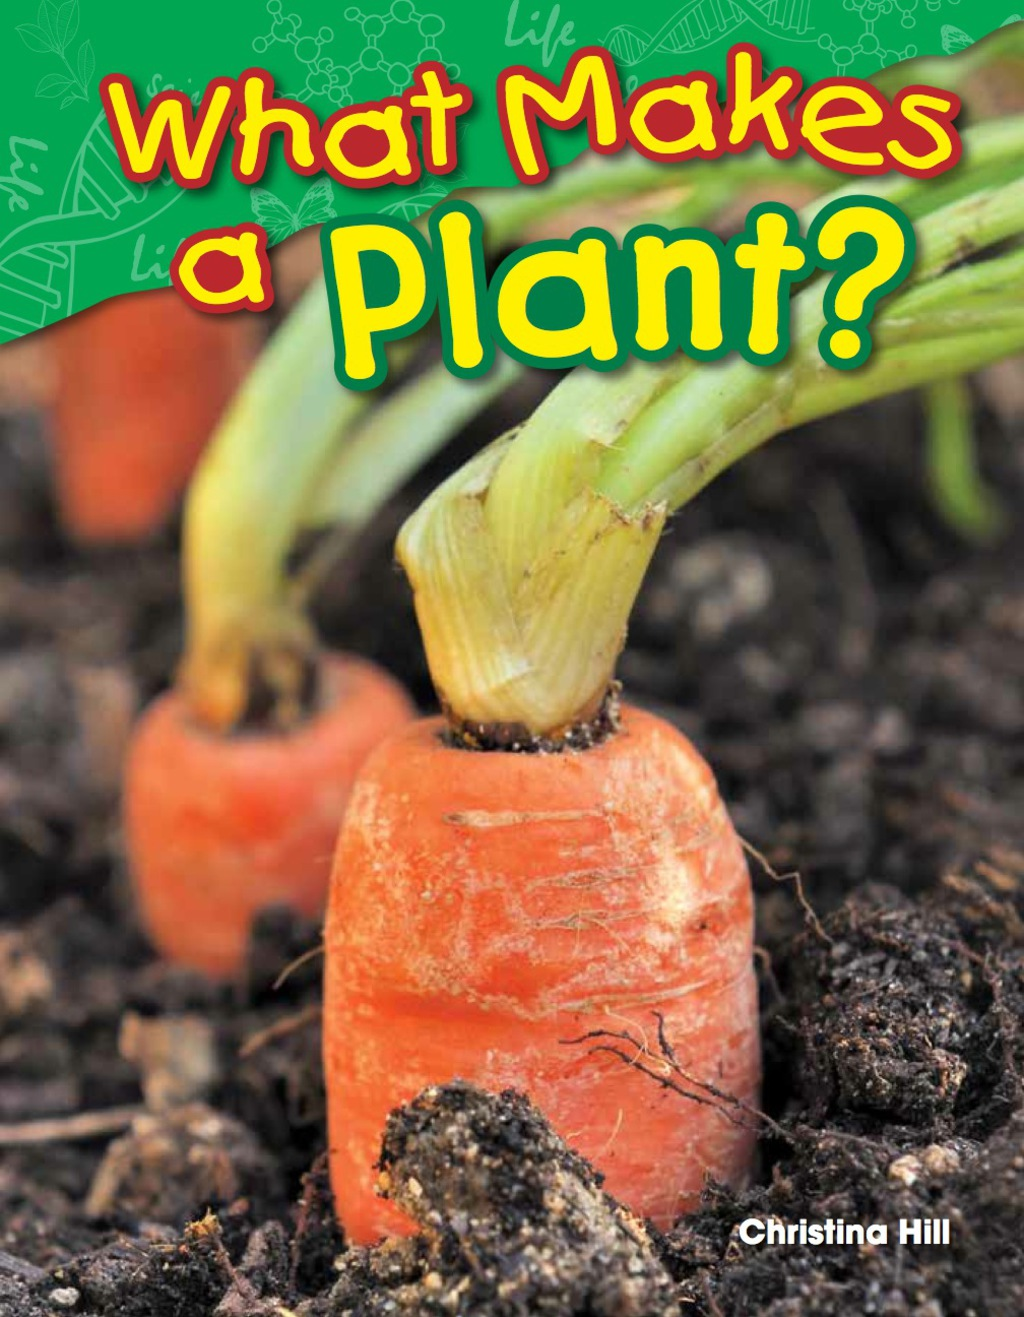 What Makes a Plant? (ebook) eBooks